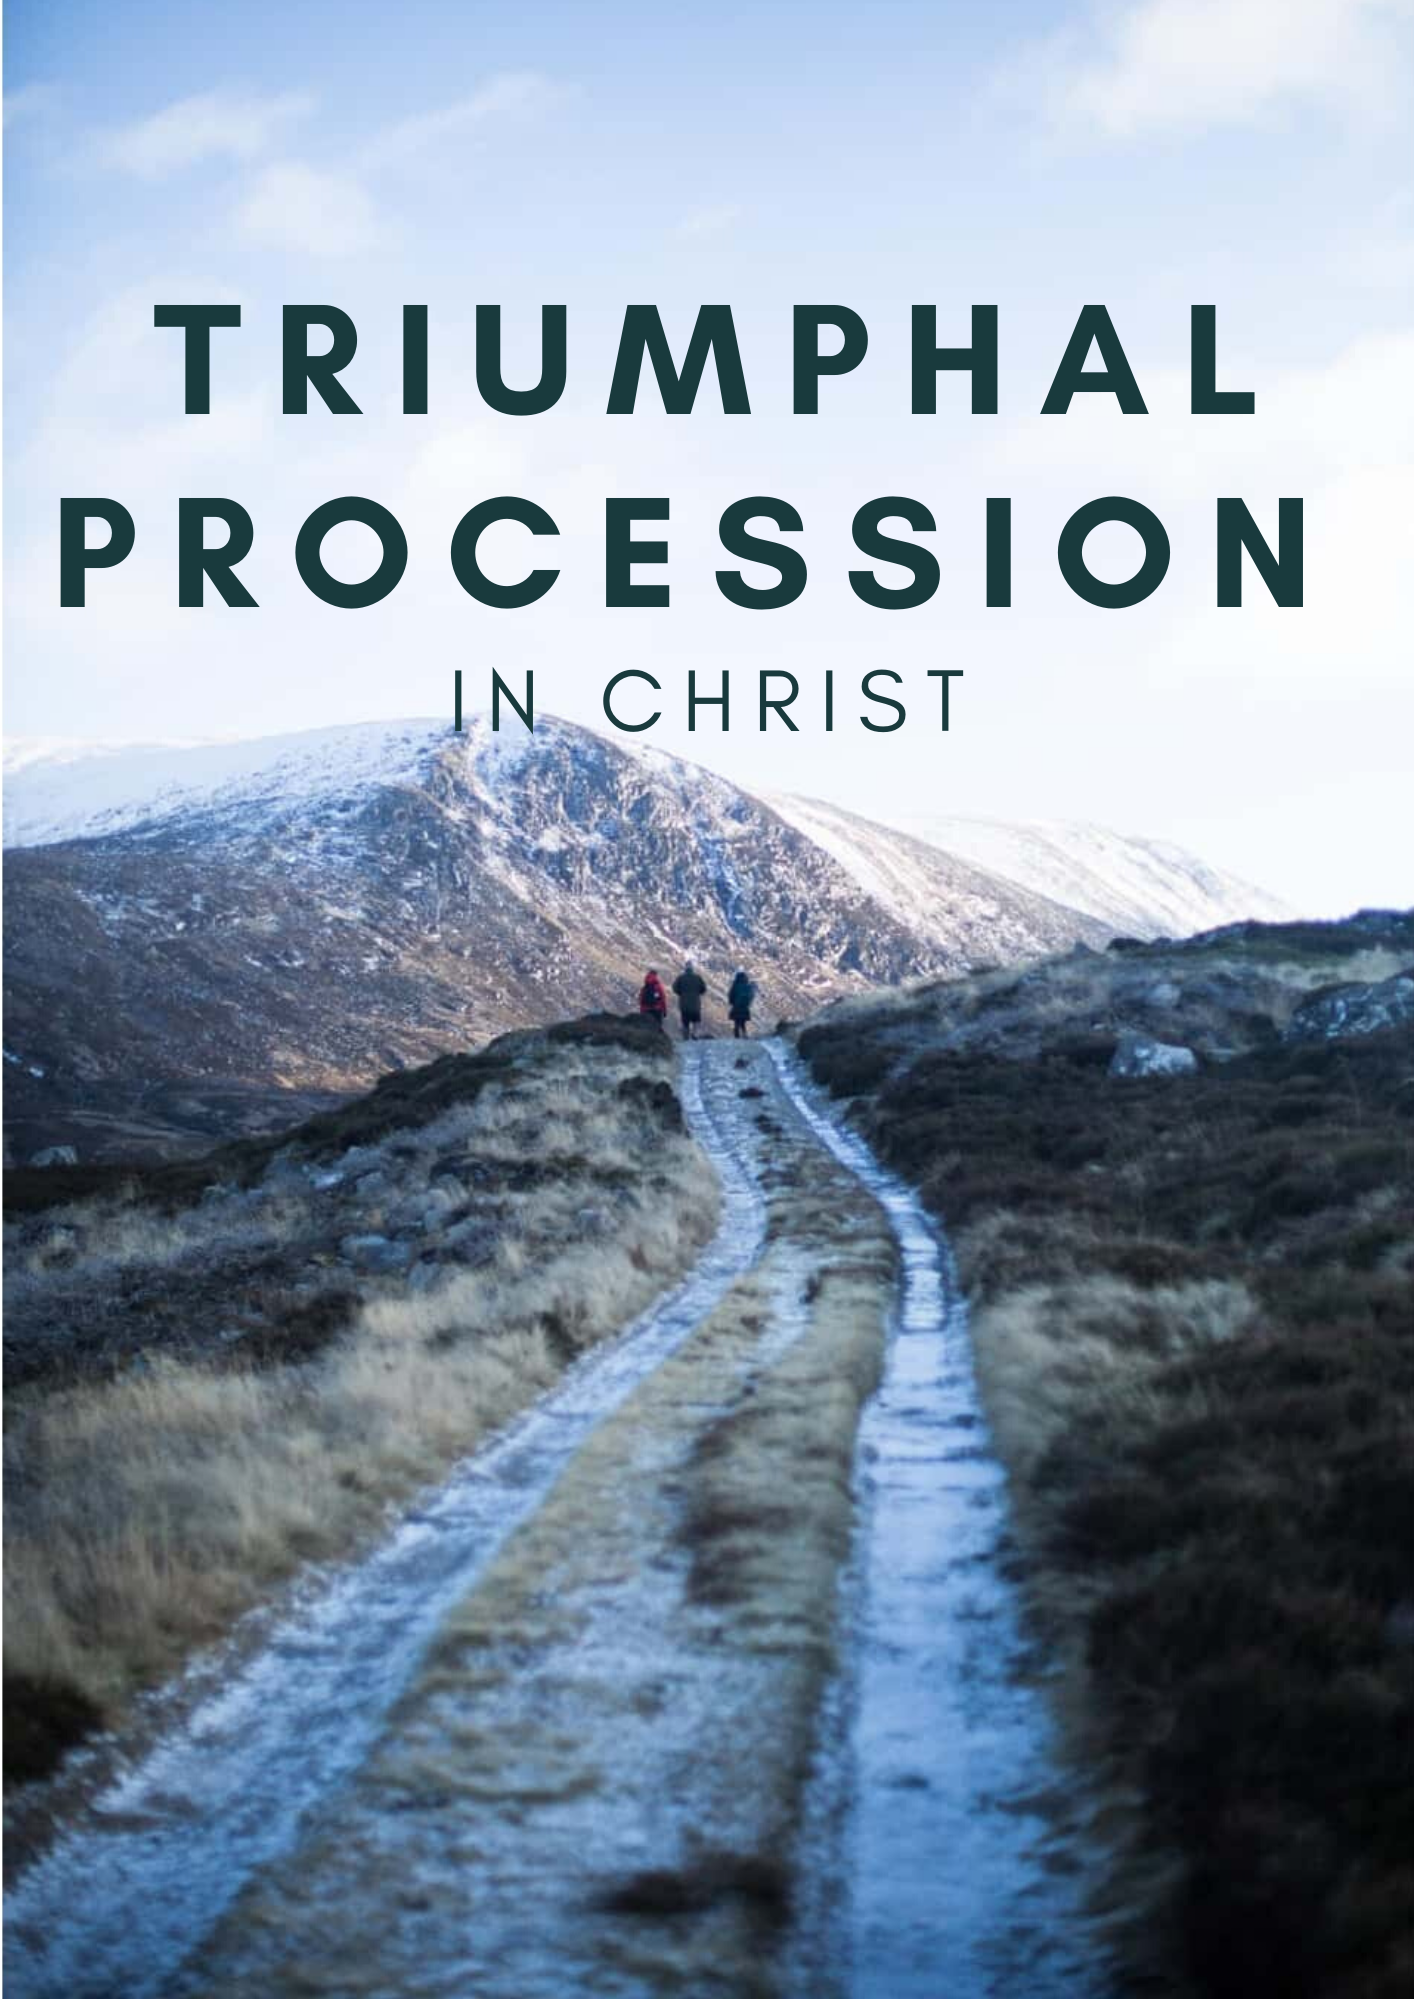 Triumphal procession in Christ